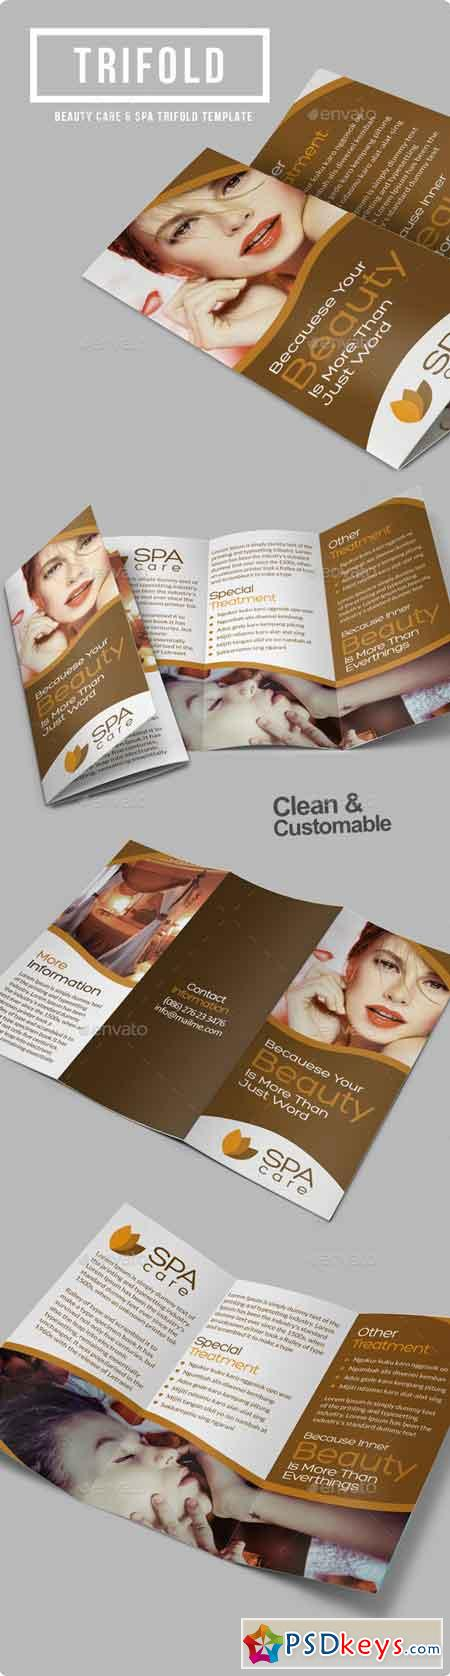 Beauty Care Spa Trifold Brochure 8895148